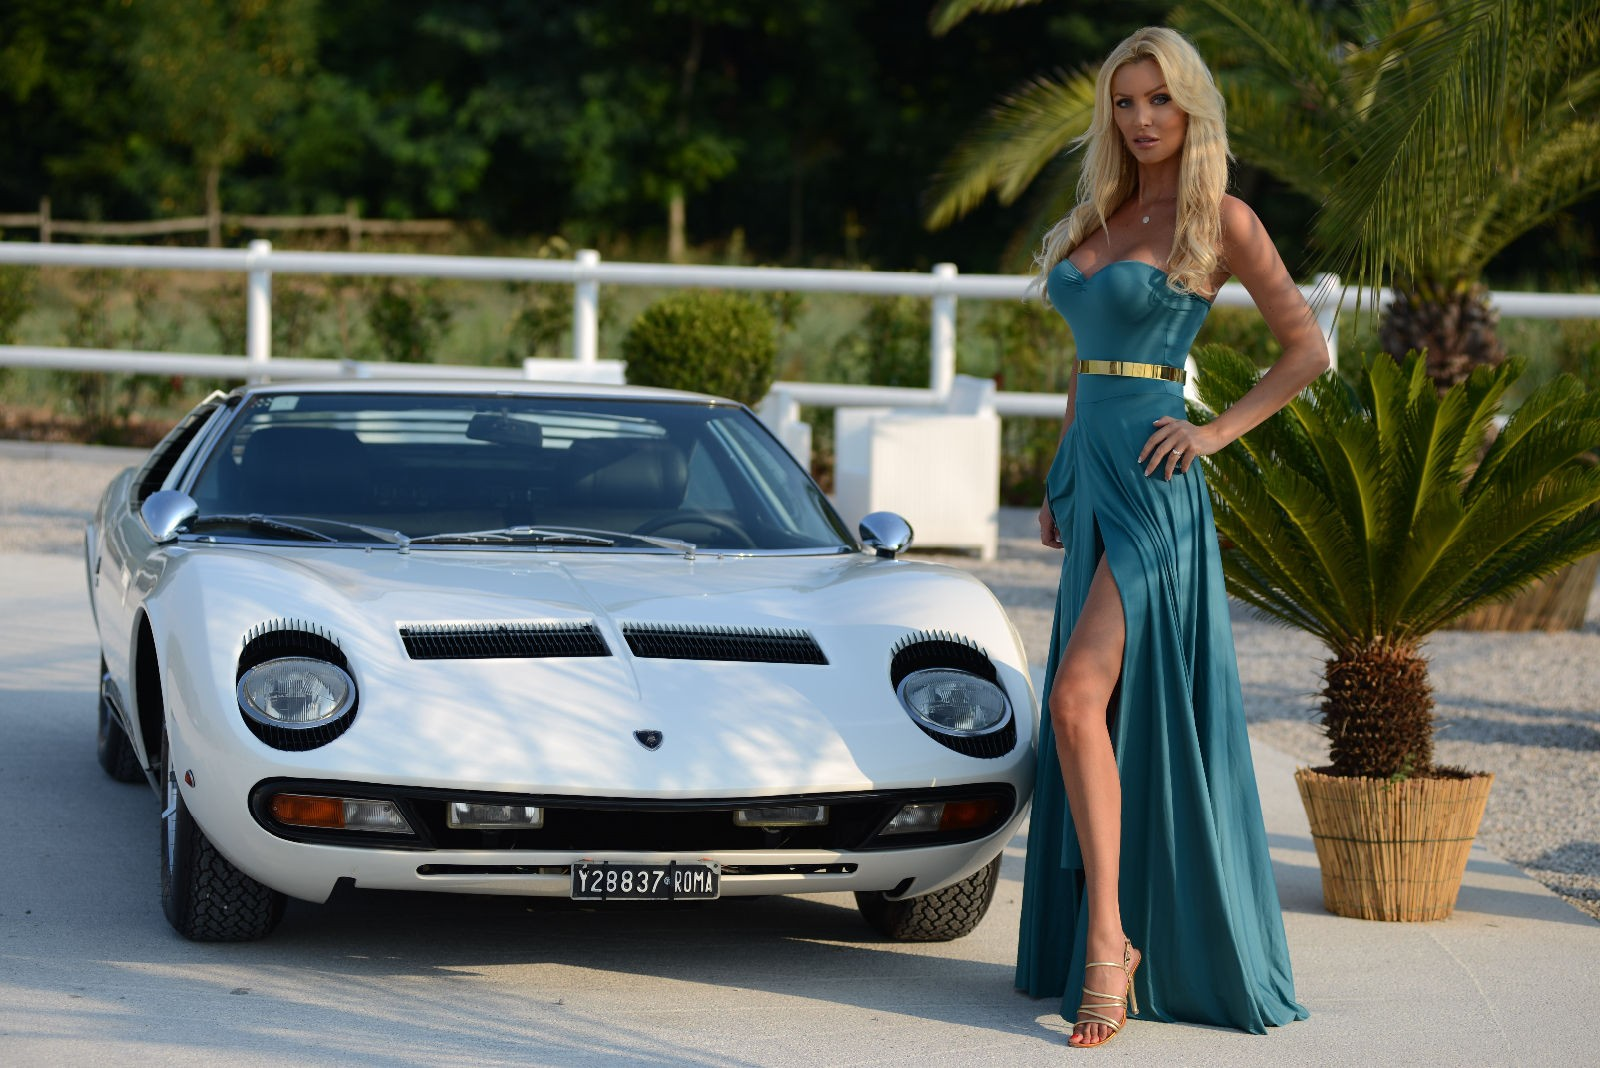 Lamborghini Miura P400s For Sale For 3 Million Euros